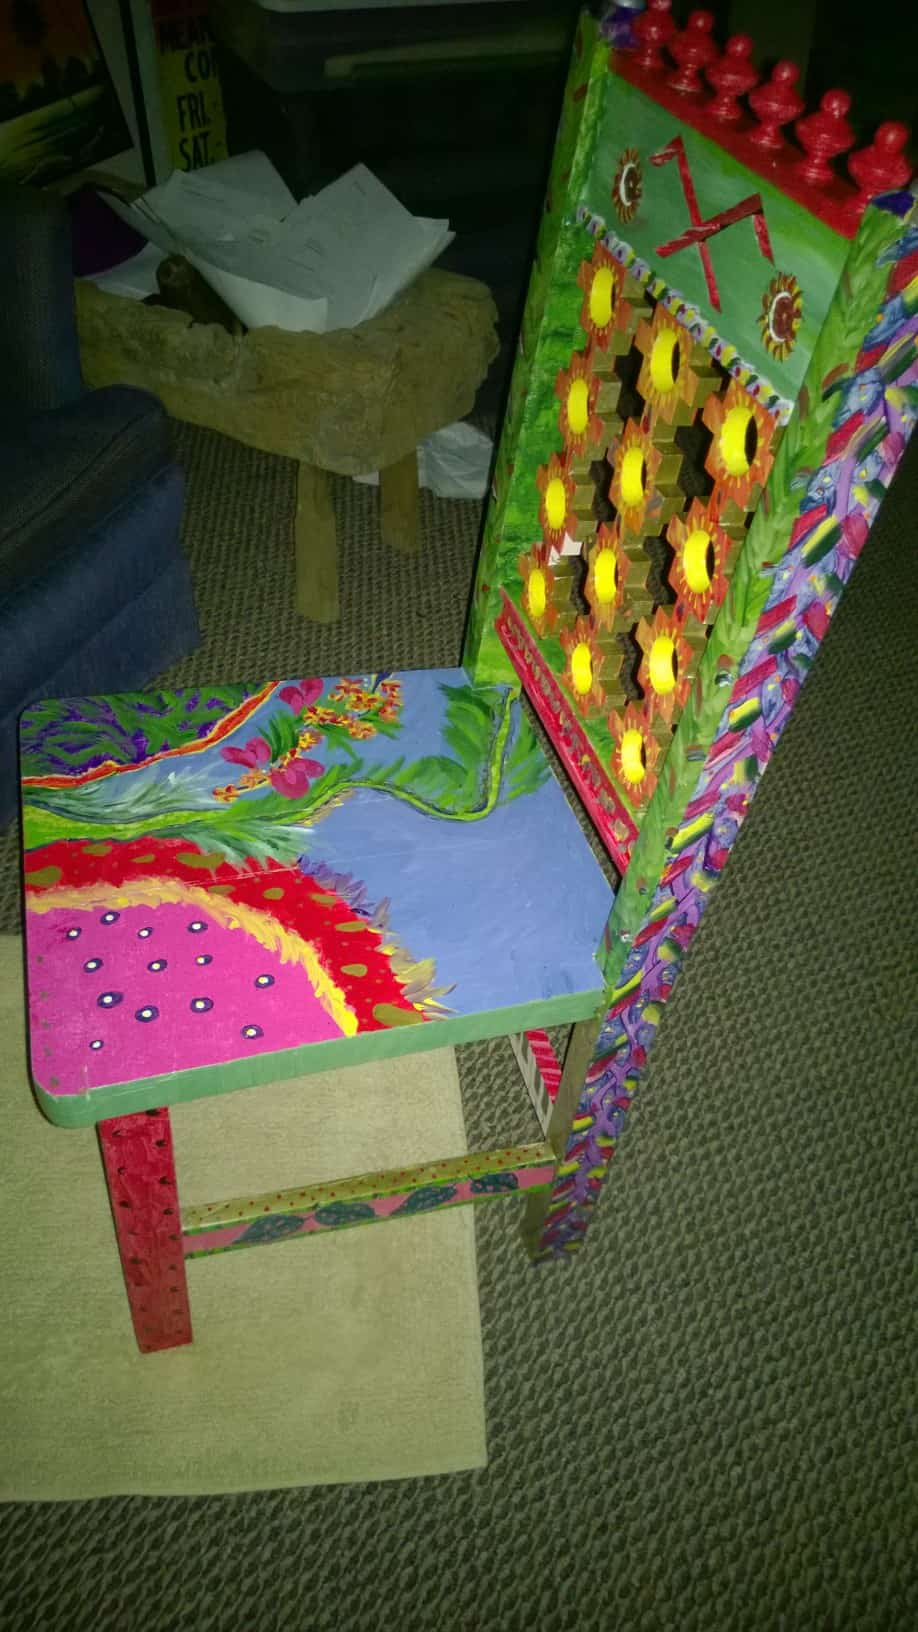 Chair005yes